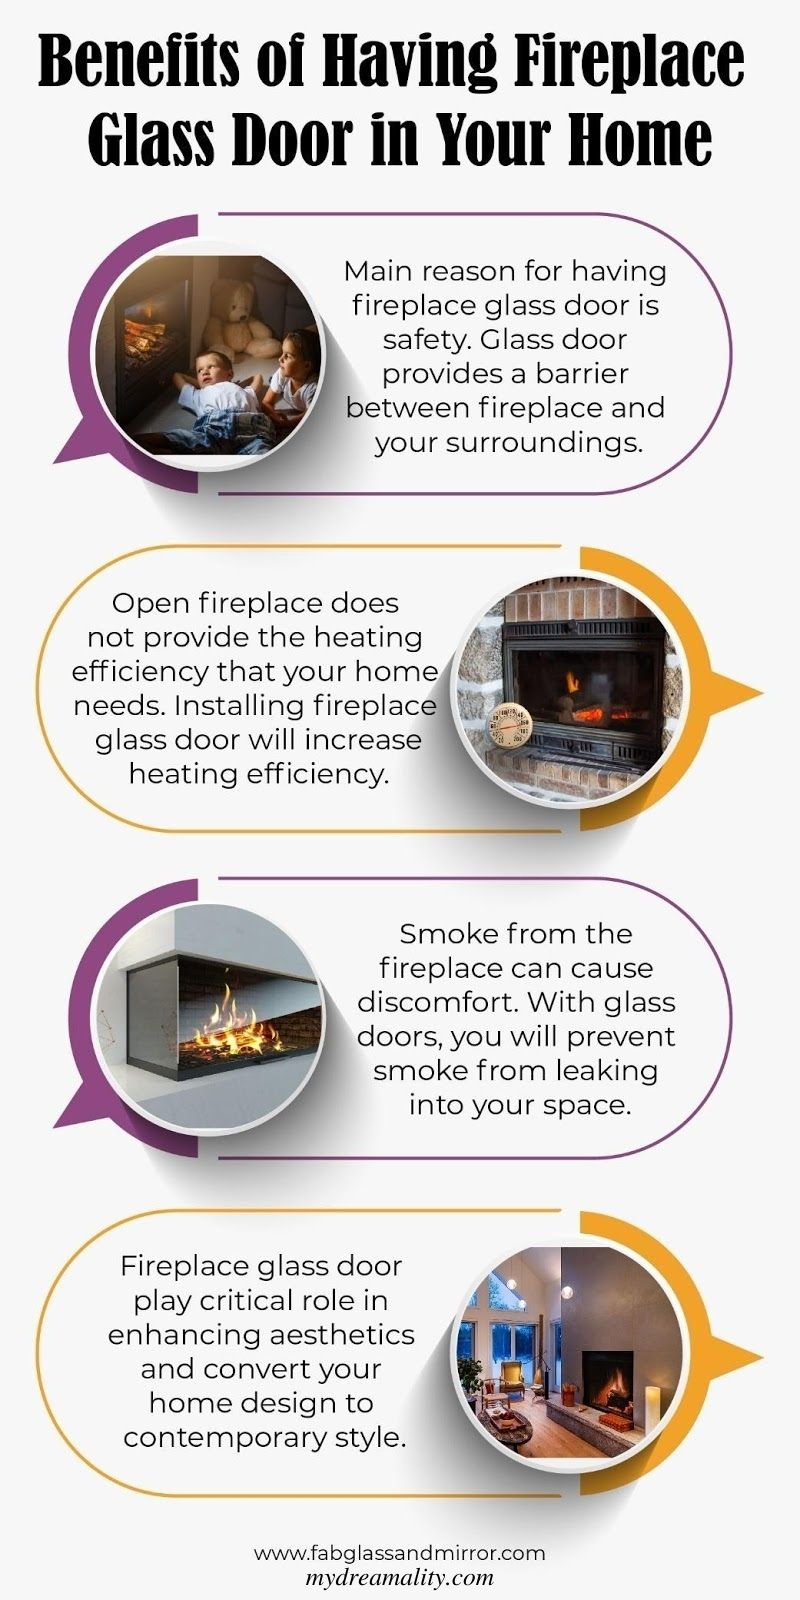 What Is the Real Cost of Top-Quality Fireplace Doors In the USA?